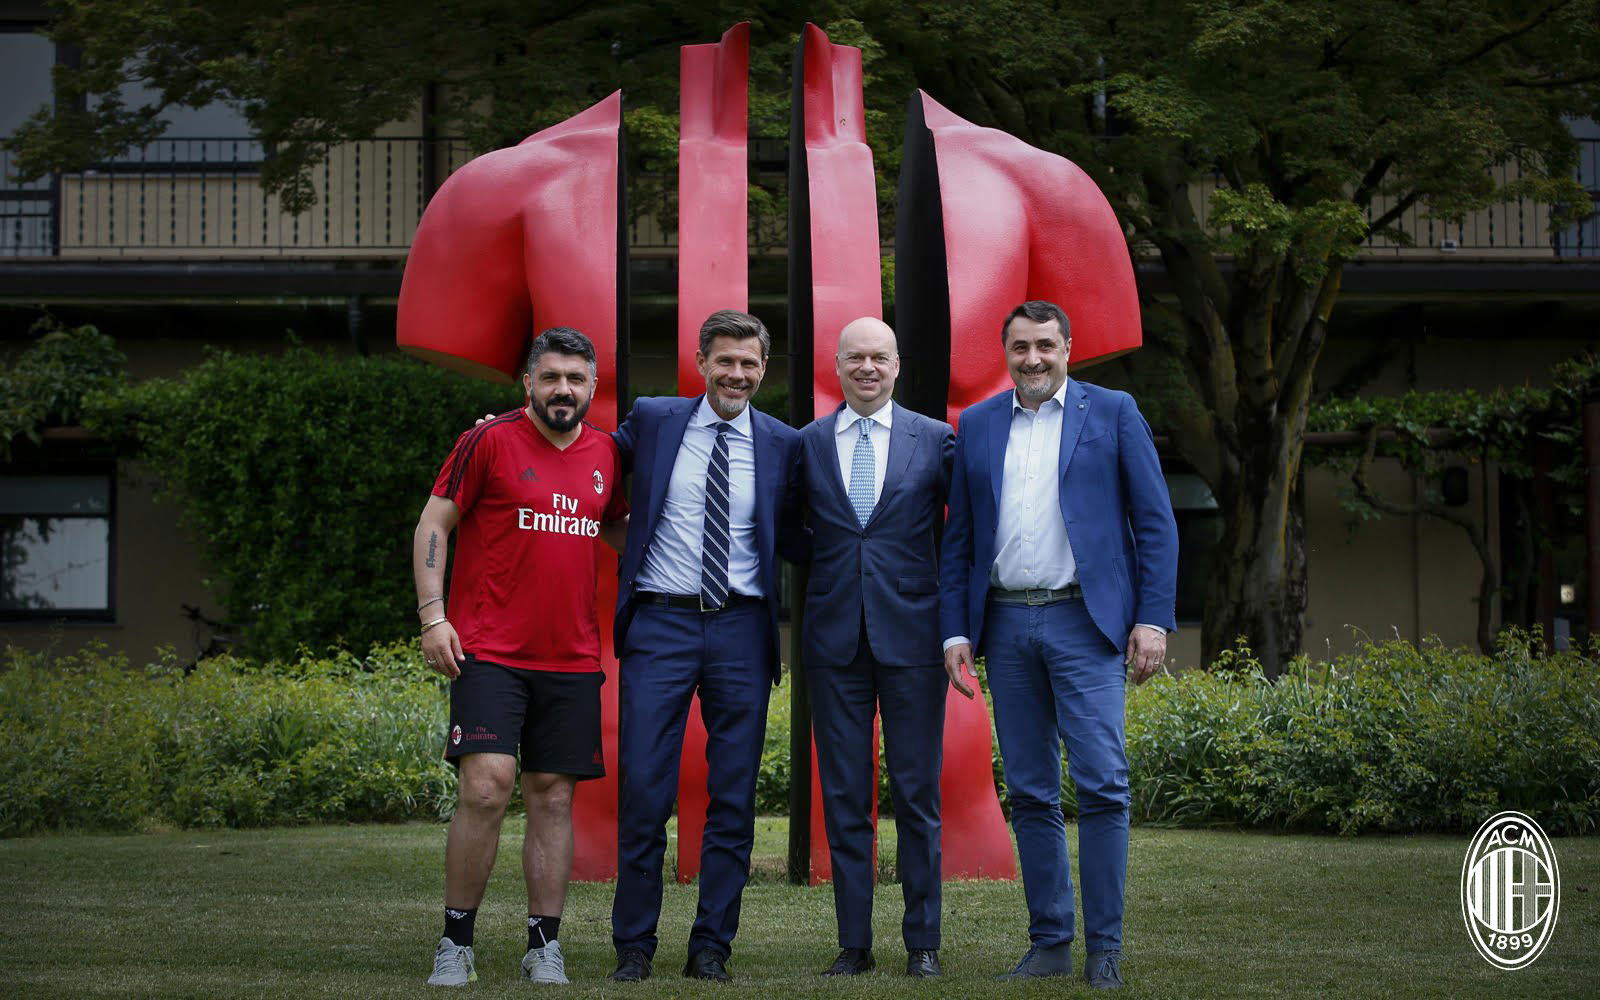 Gennaro Gattuso, Zvonimir Boban, Marco Fassone and Massimiliano Mirabelli at Milanello. (@acmilan.com)